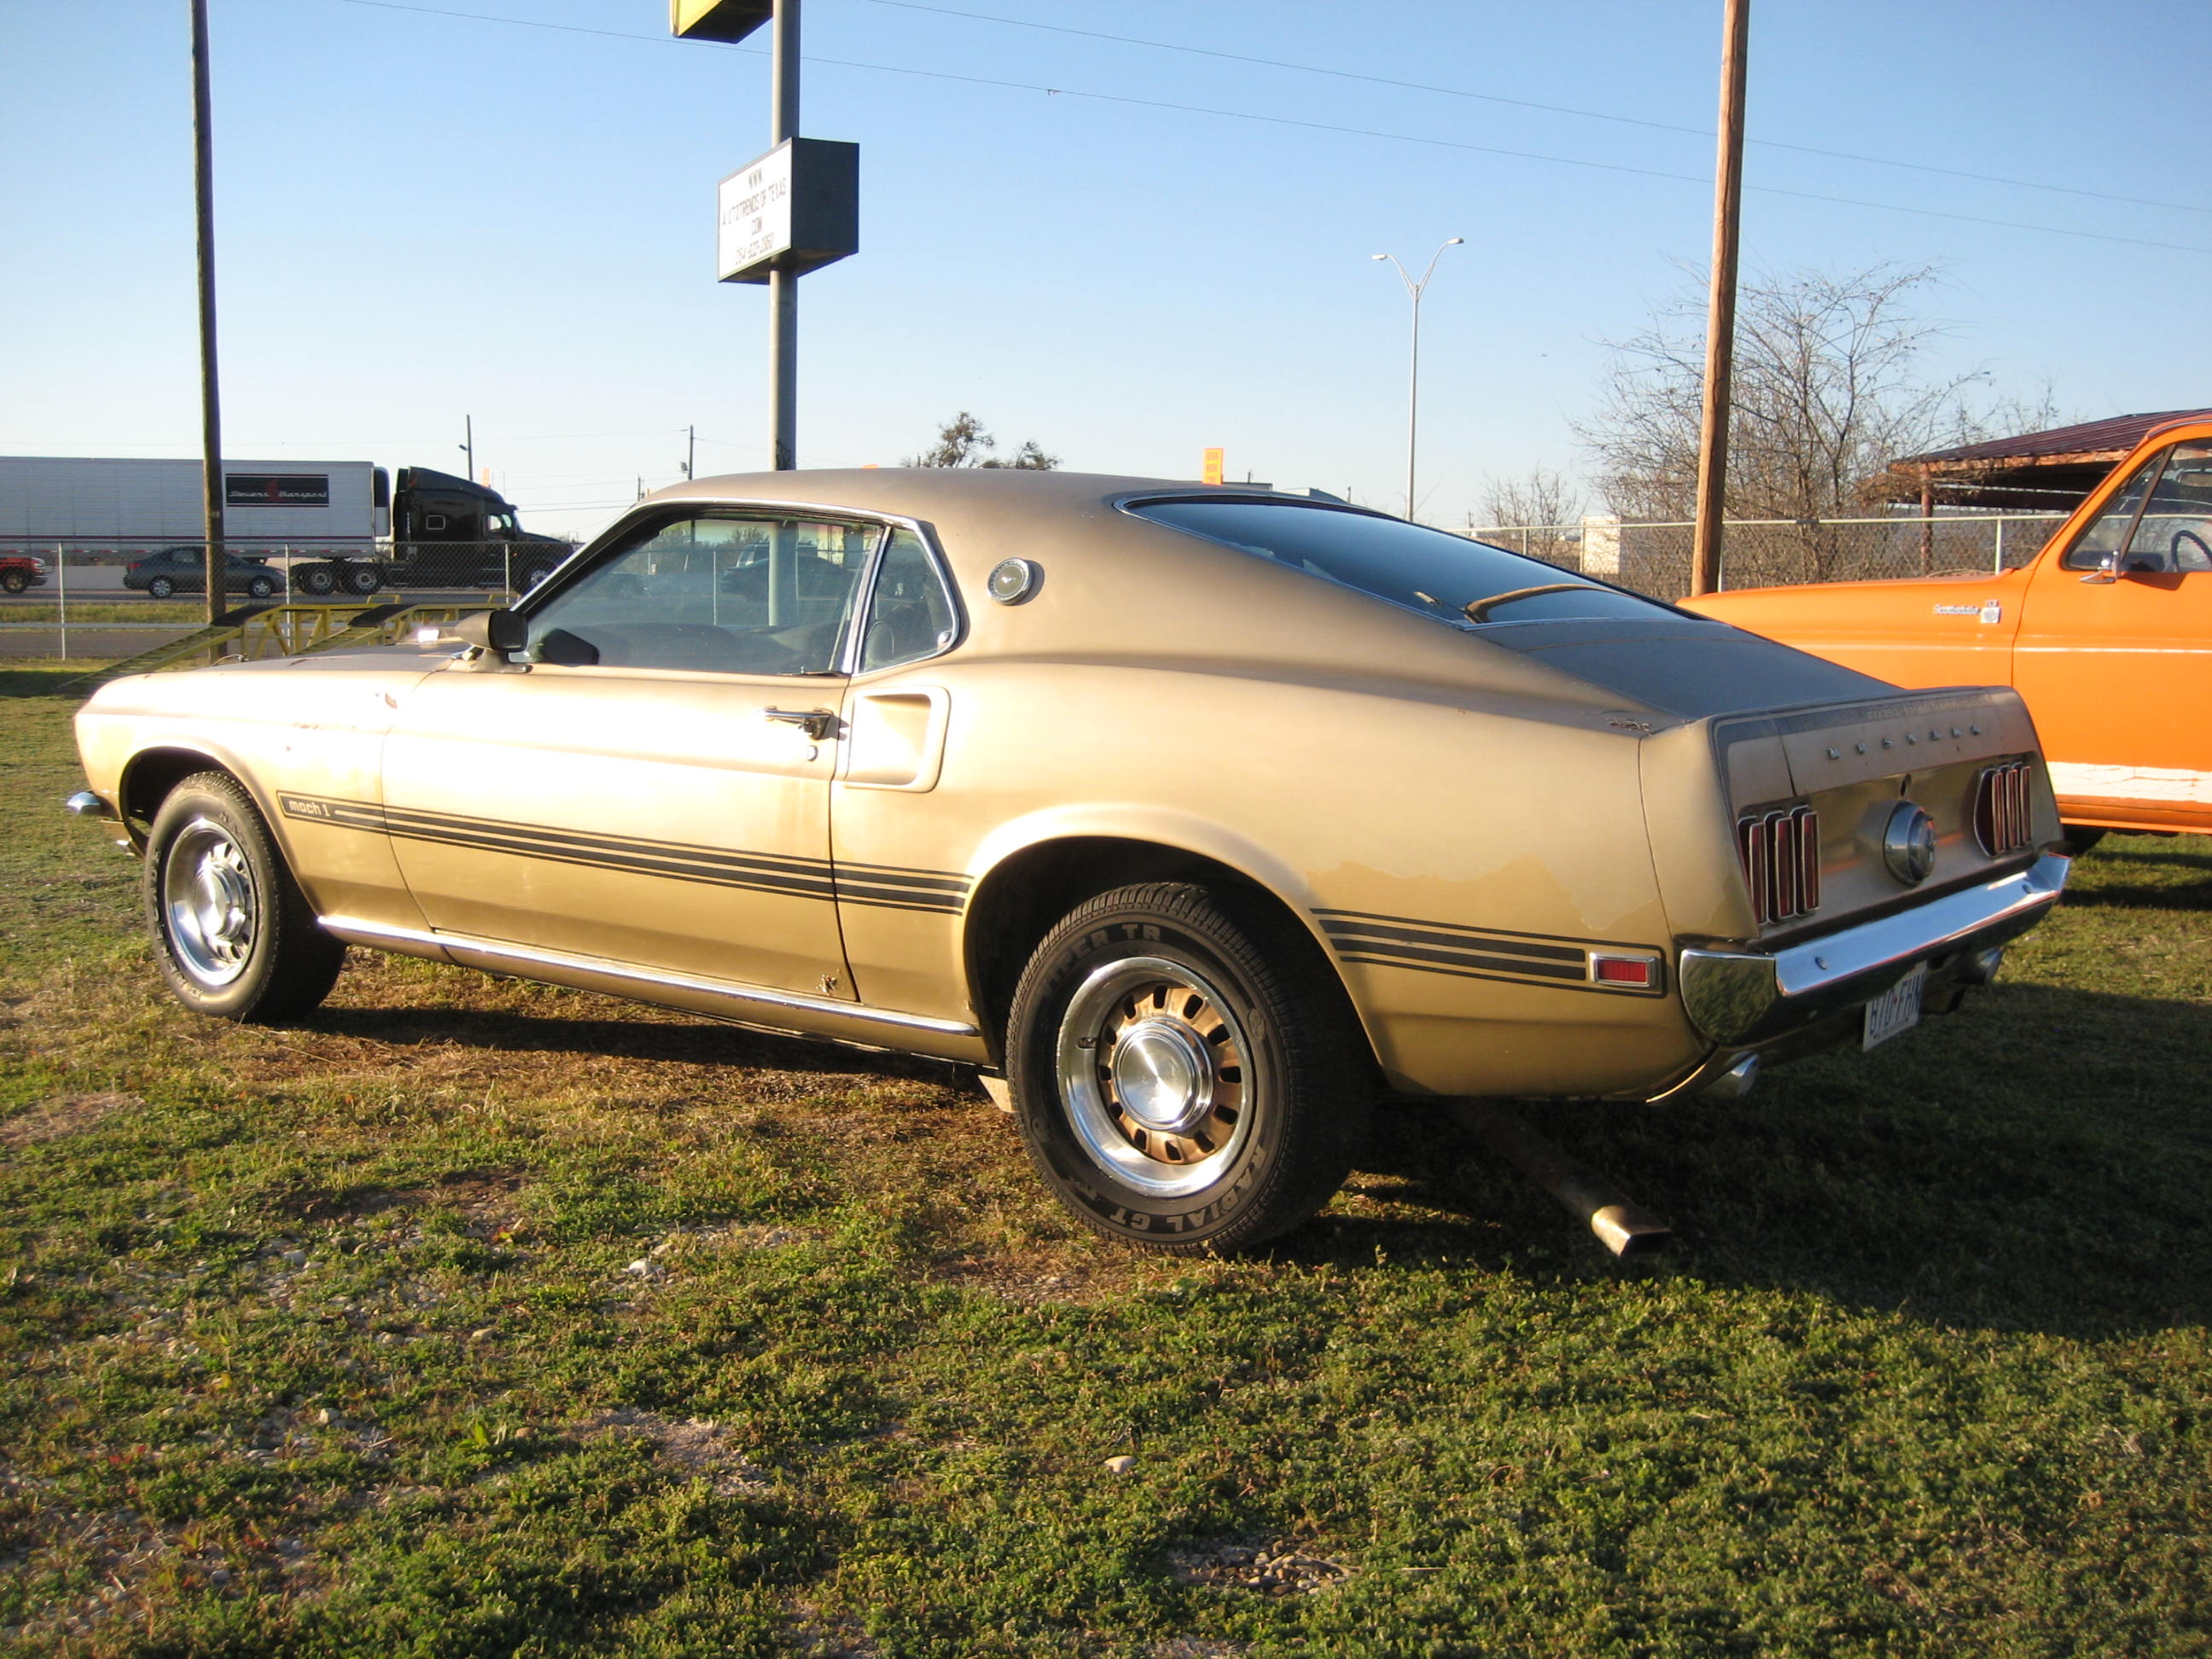 1969 Mustang Mach 1 on vehicle trunk storage